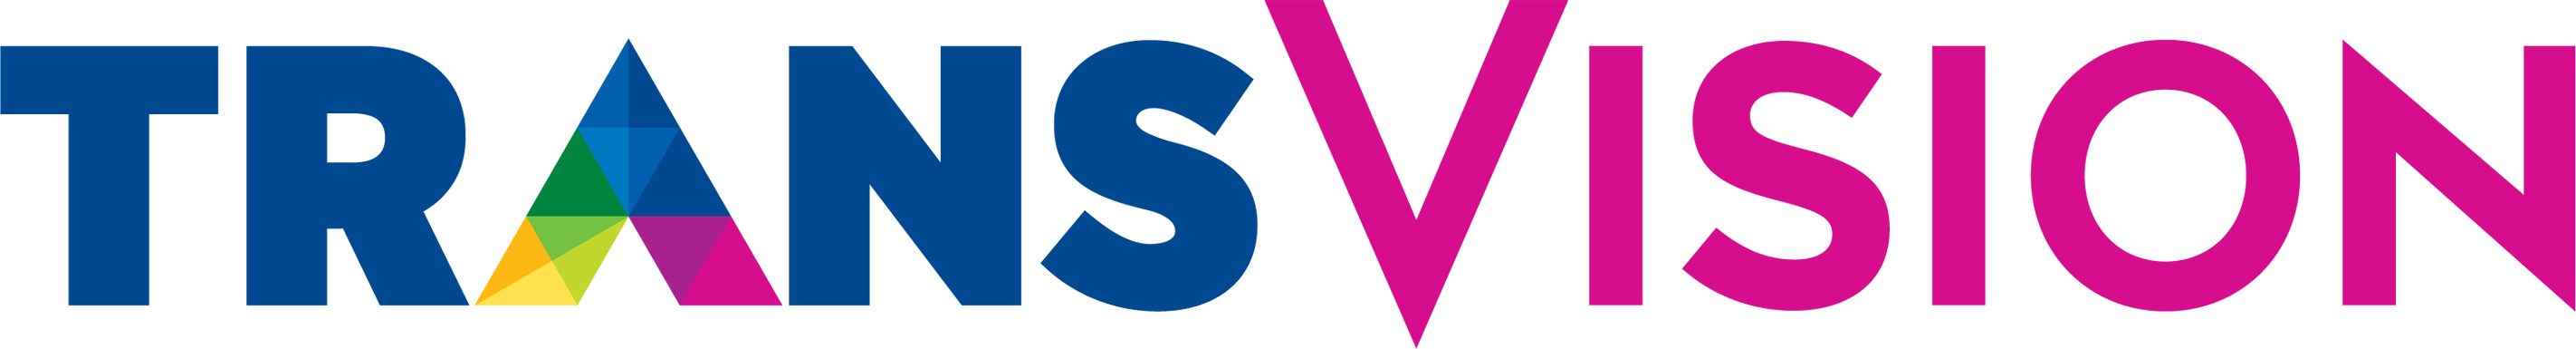 TransVision.png